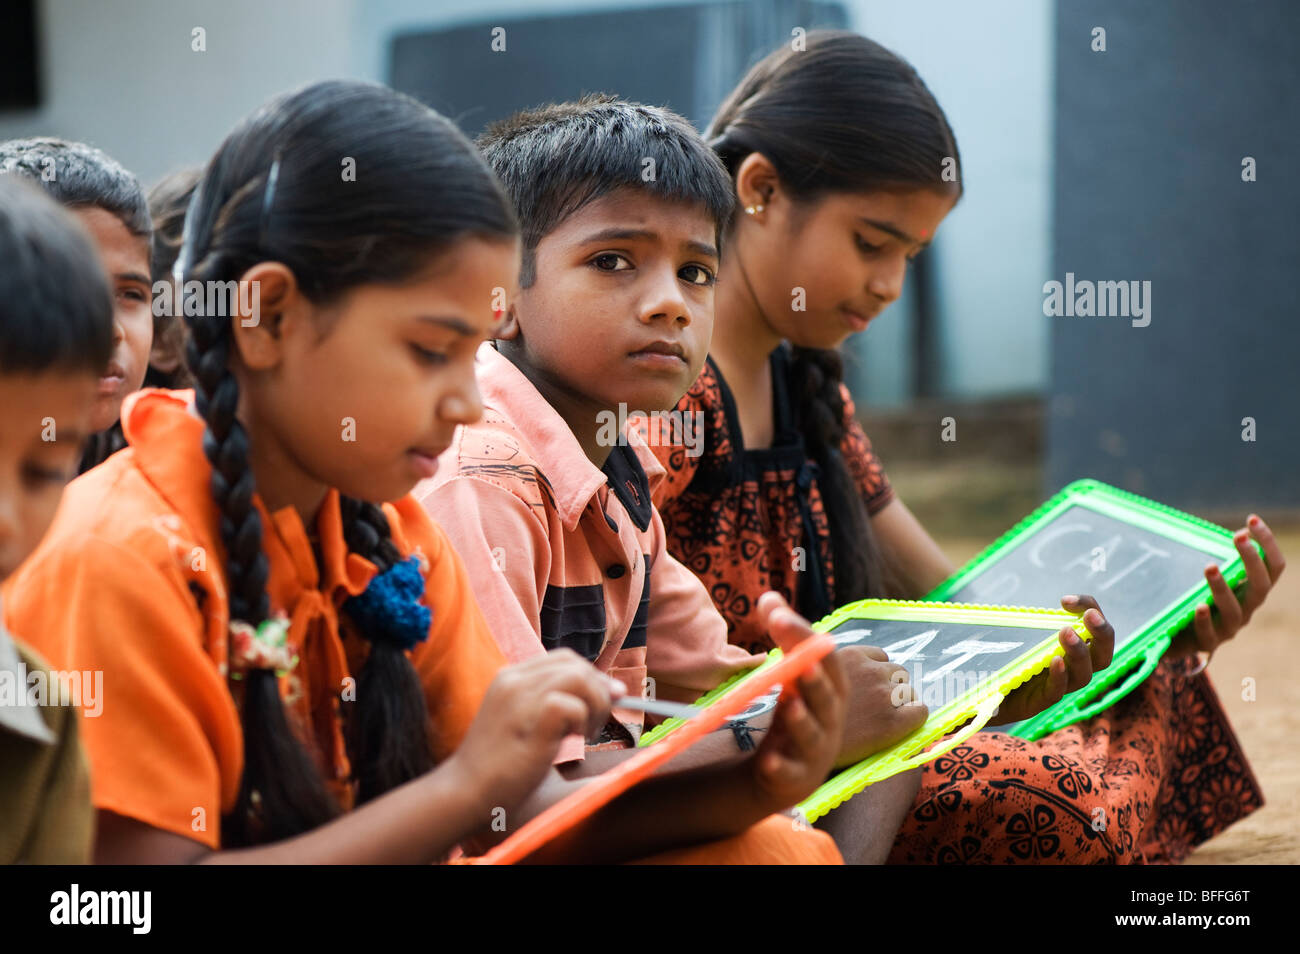 Indian school children sitting outside their school writing on chalkboards. Andhra Pradesh, India. Selective focus. Stock Photo